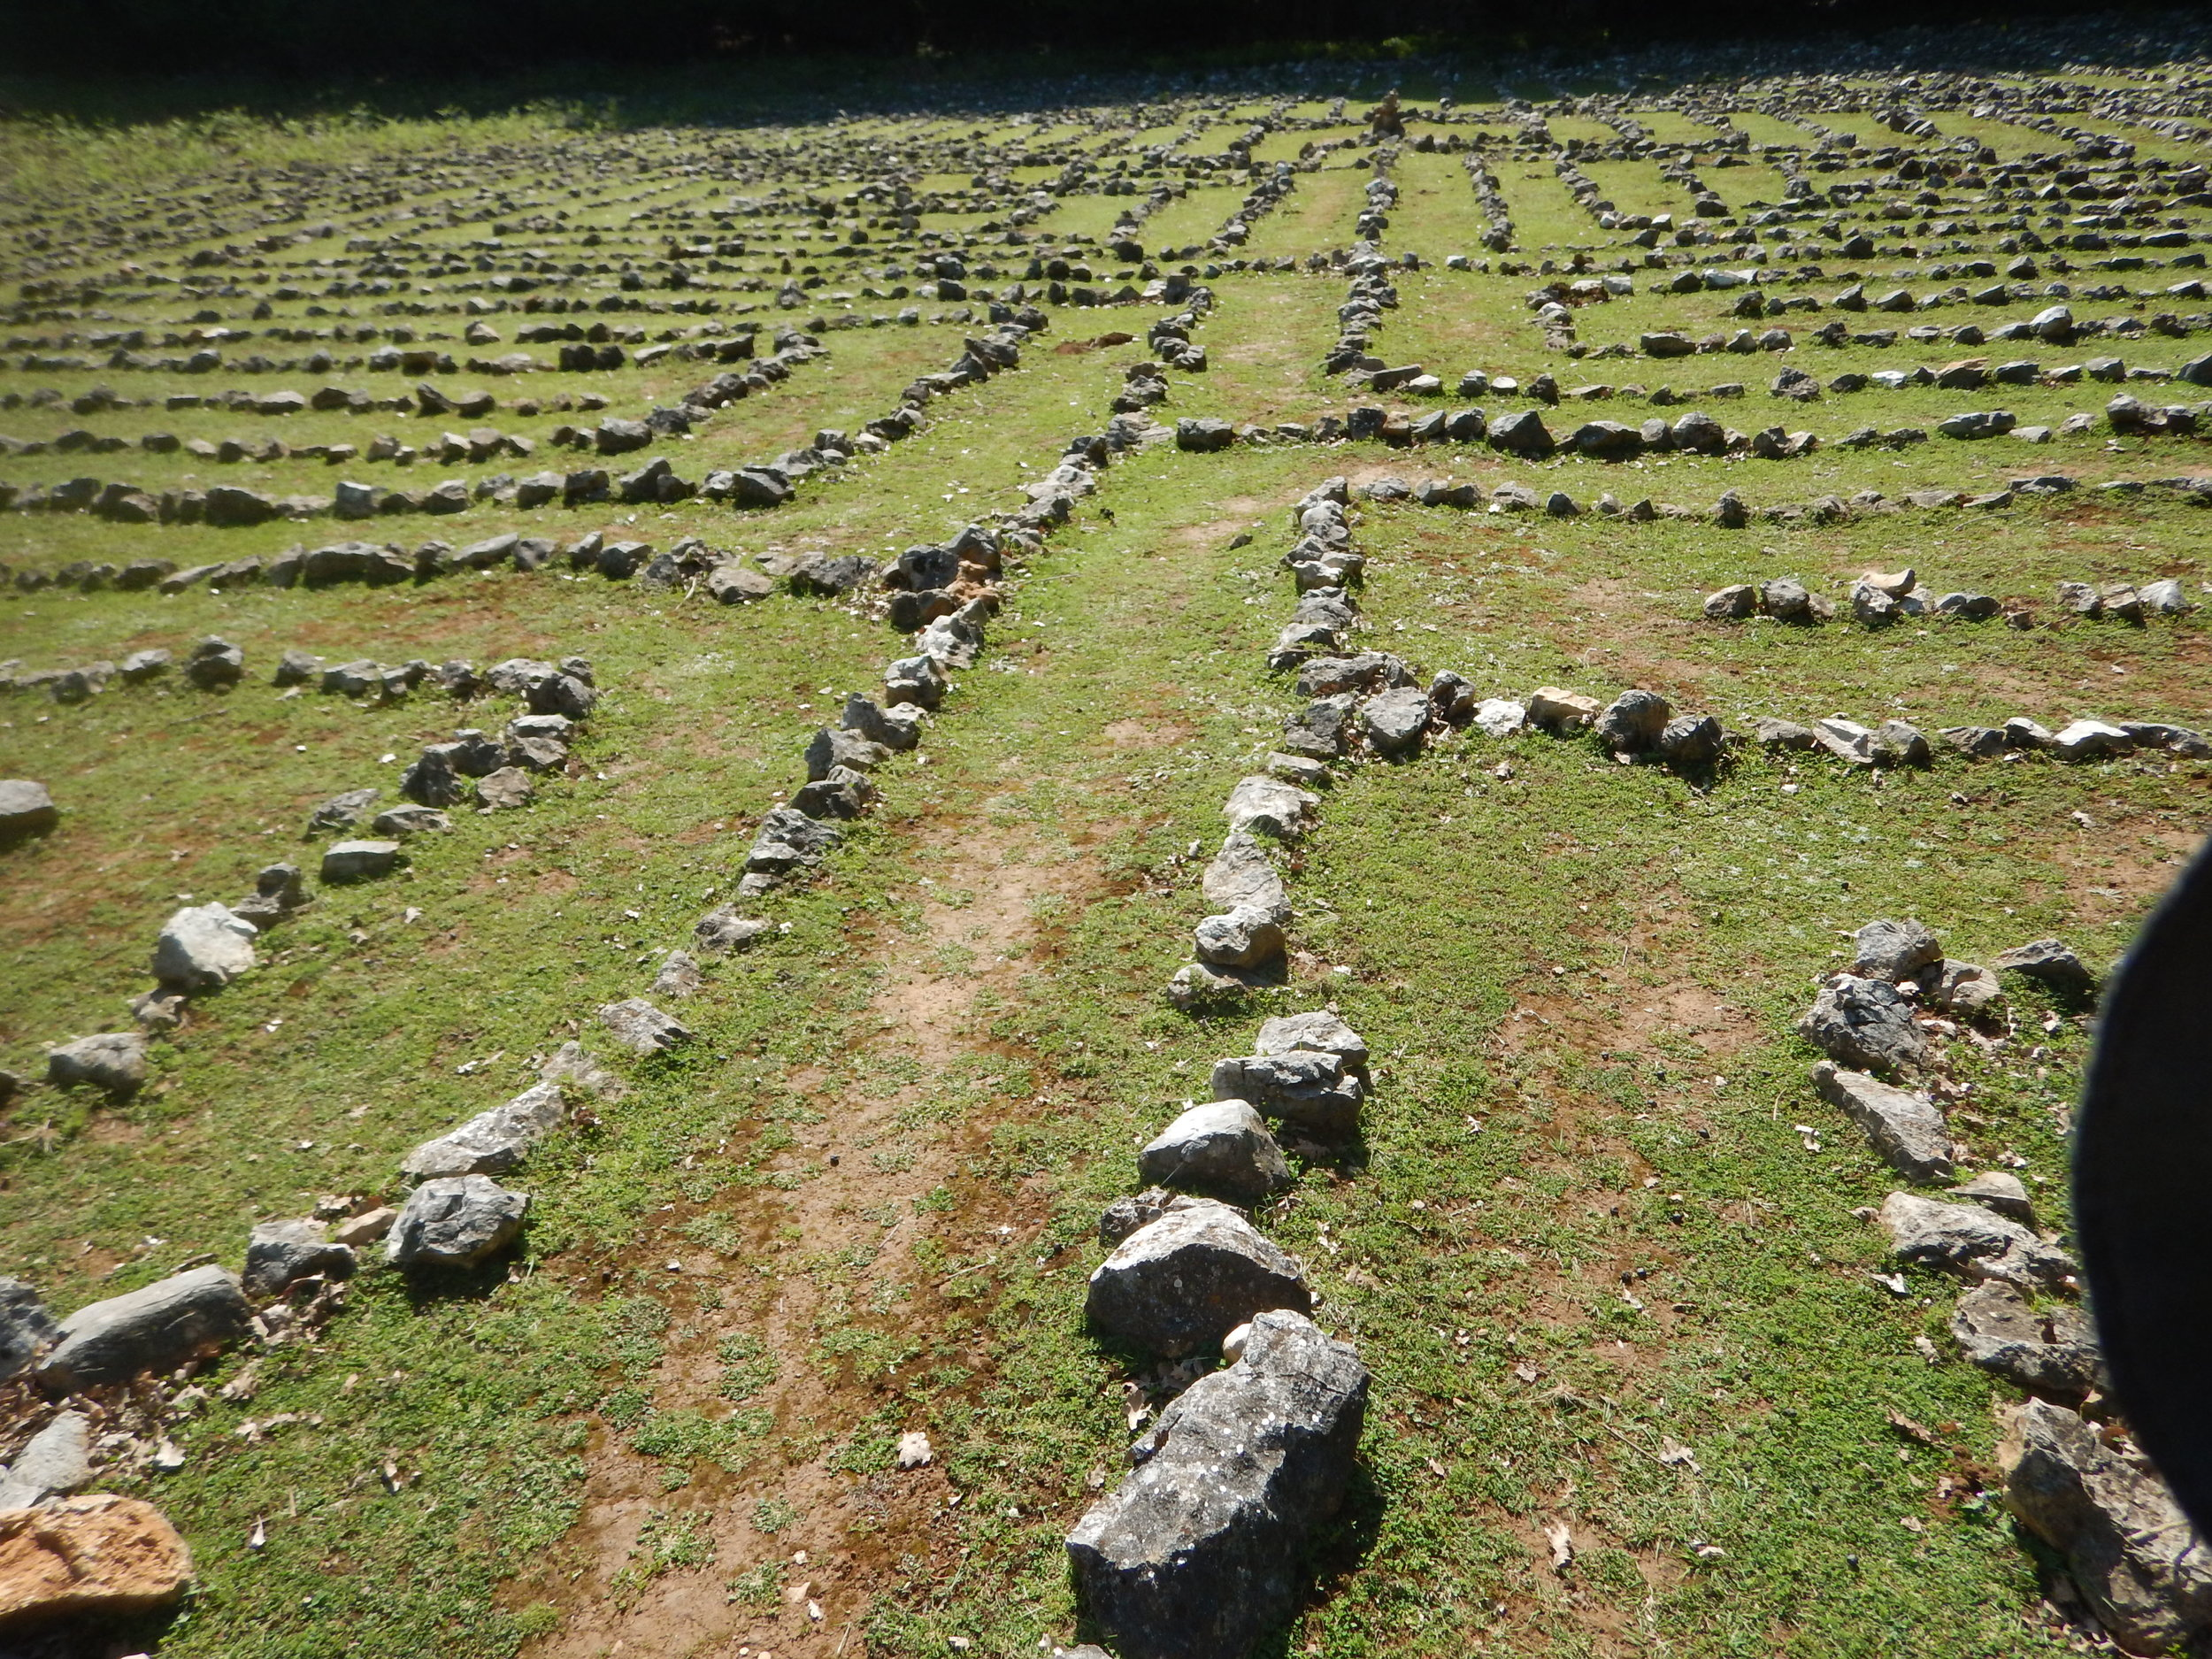 Today I walked the Lada Labyrinth. More on that under another heading.